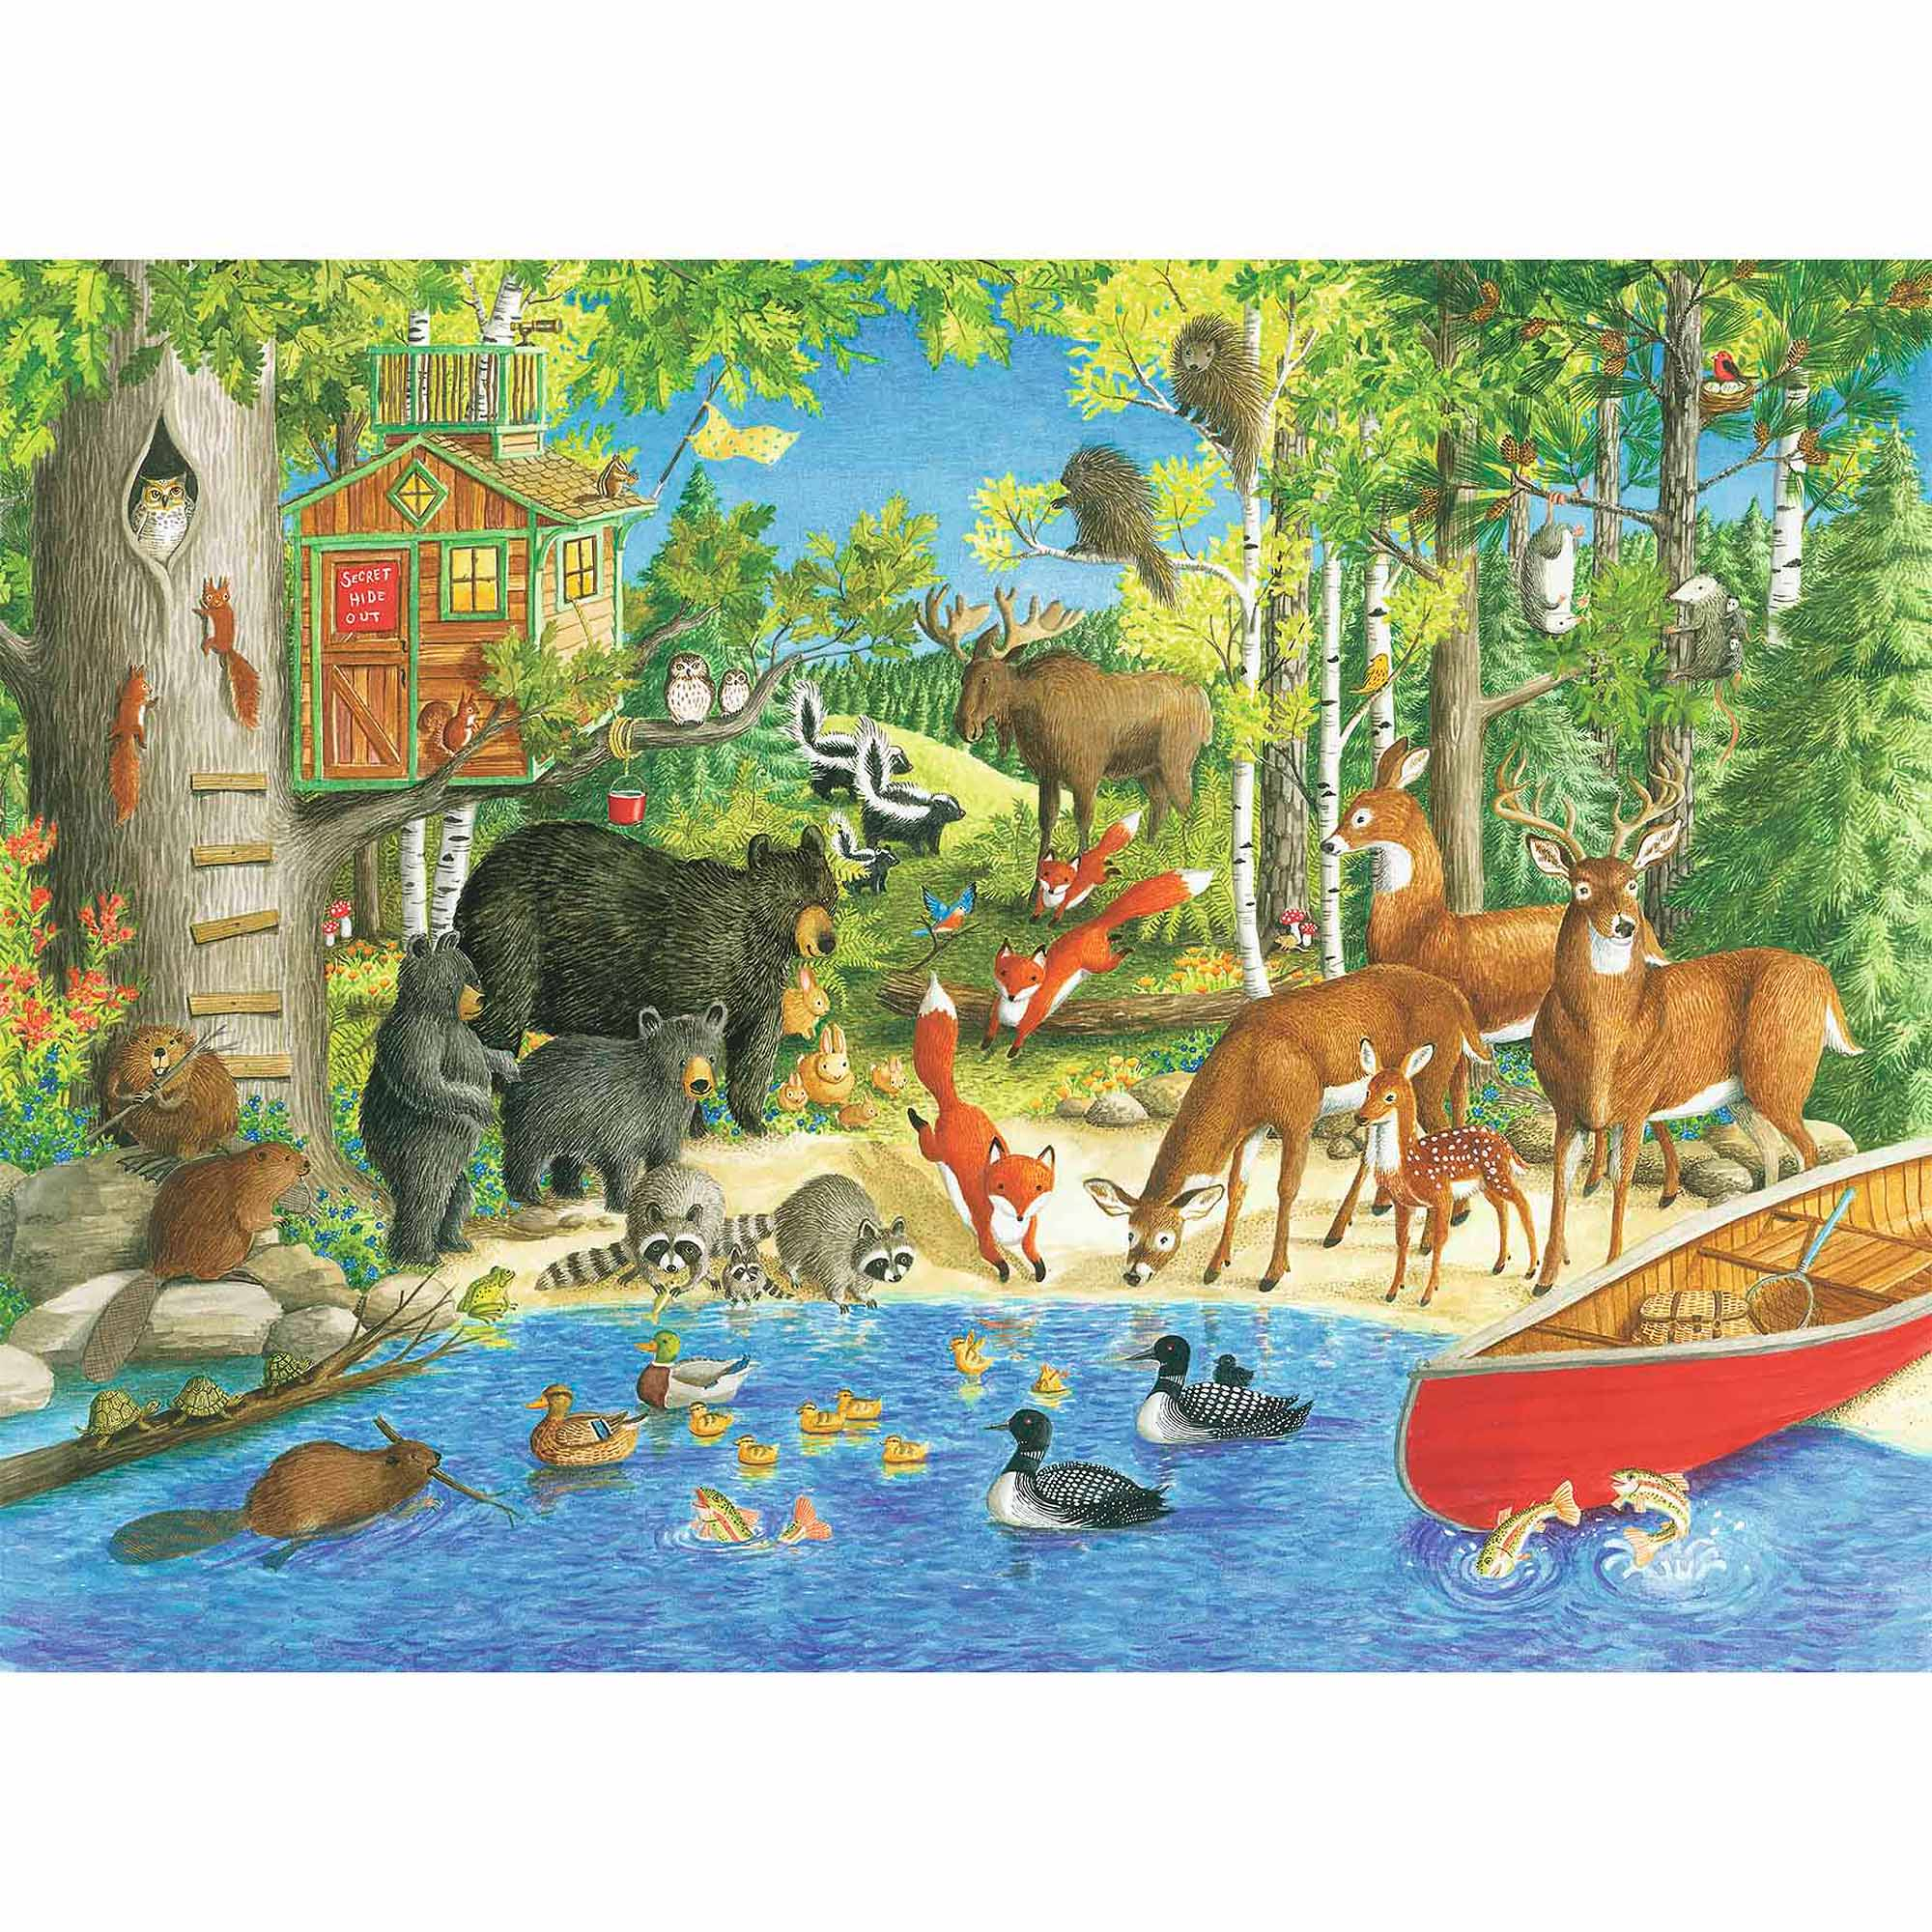 Woodland Friends Puzzle, 200 Pieces by Ravensburger